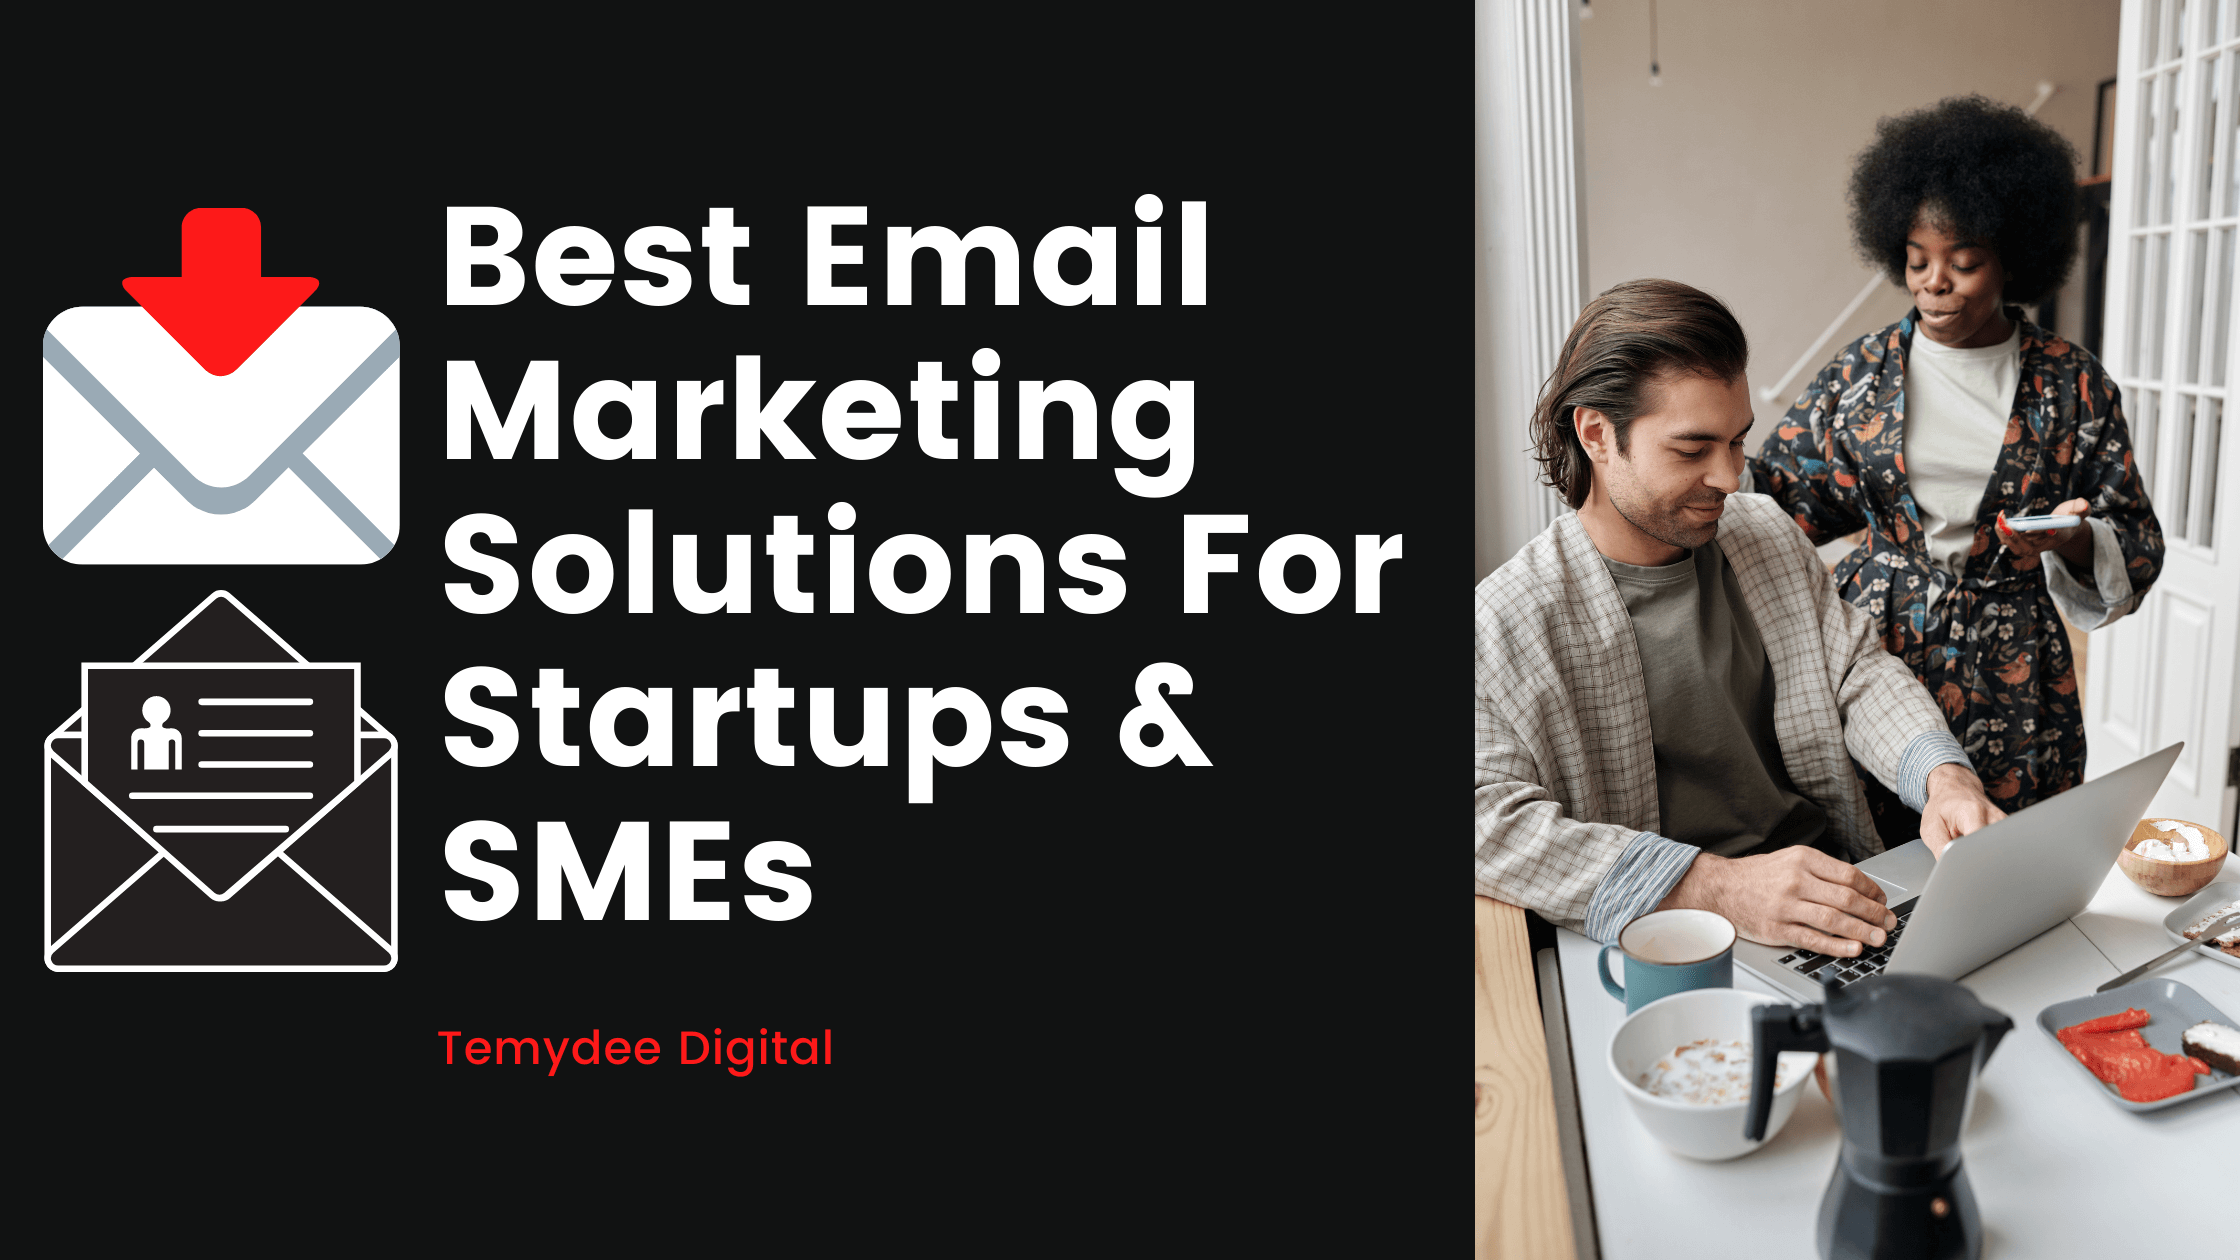 Best Email Marketing Solutions For Startups & SMEs